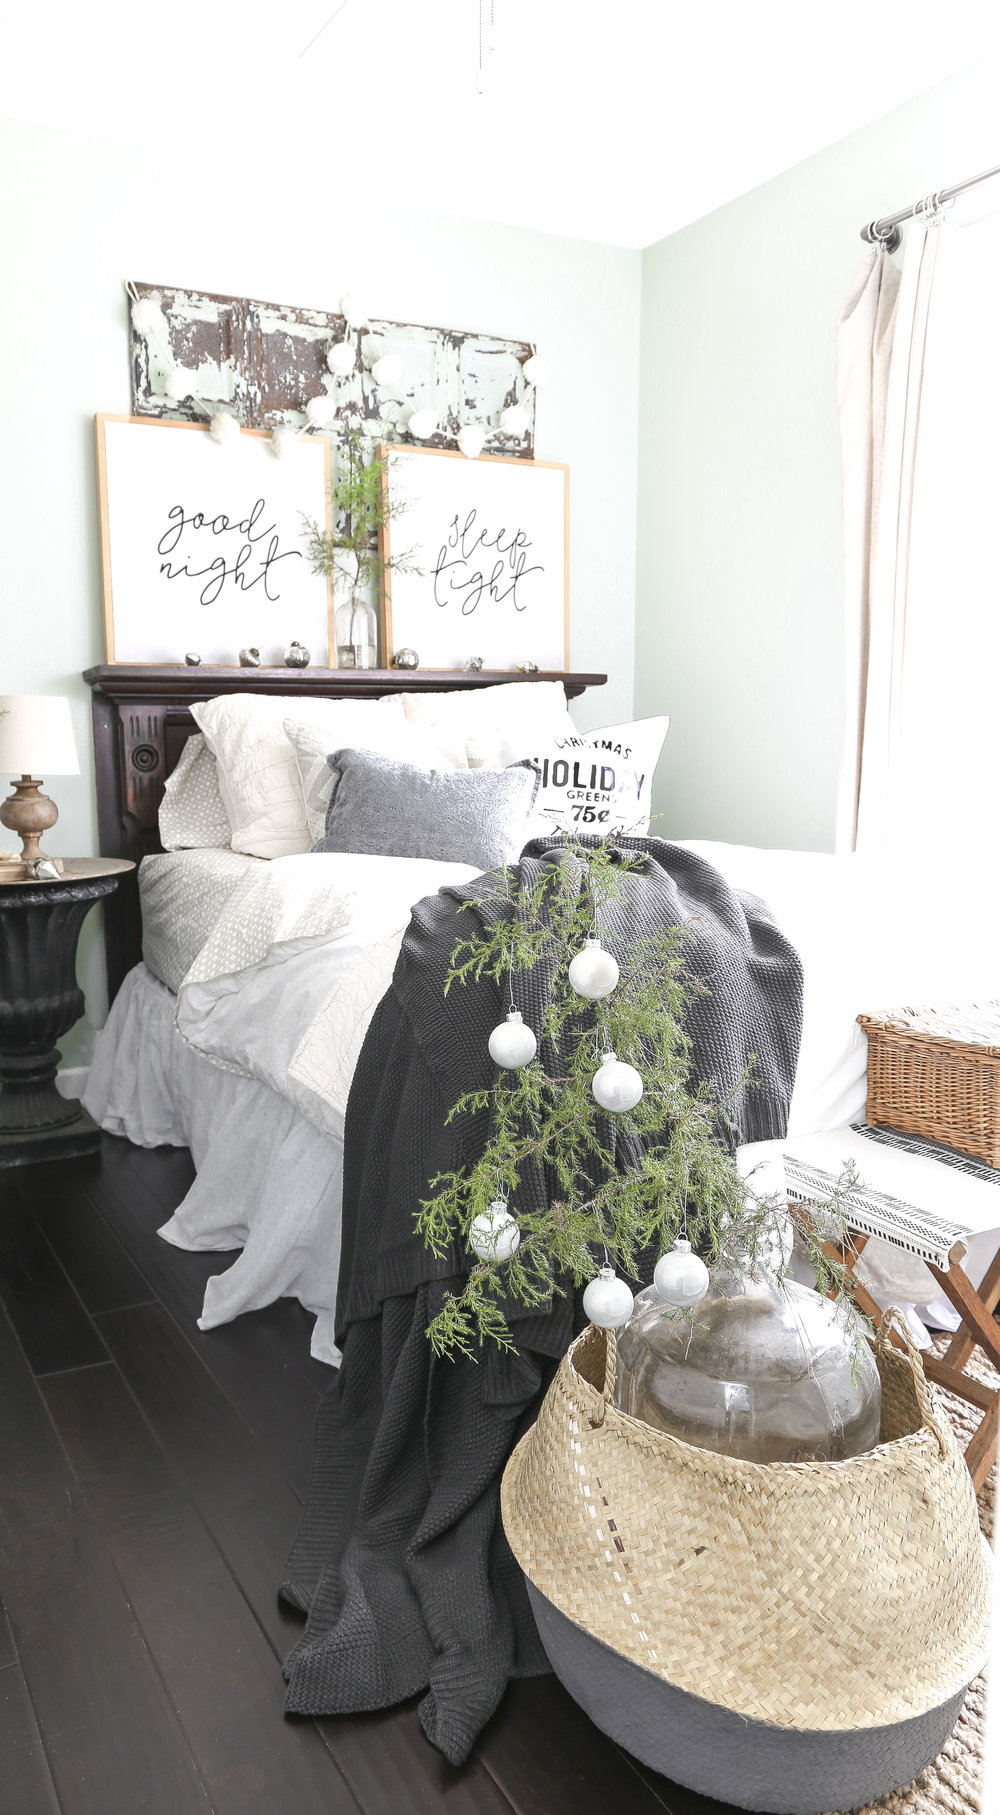 Christmas Home Tour- Guest Bedroom Christmas Decor with small tree in basket- Plum Pretty Decor and Design